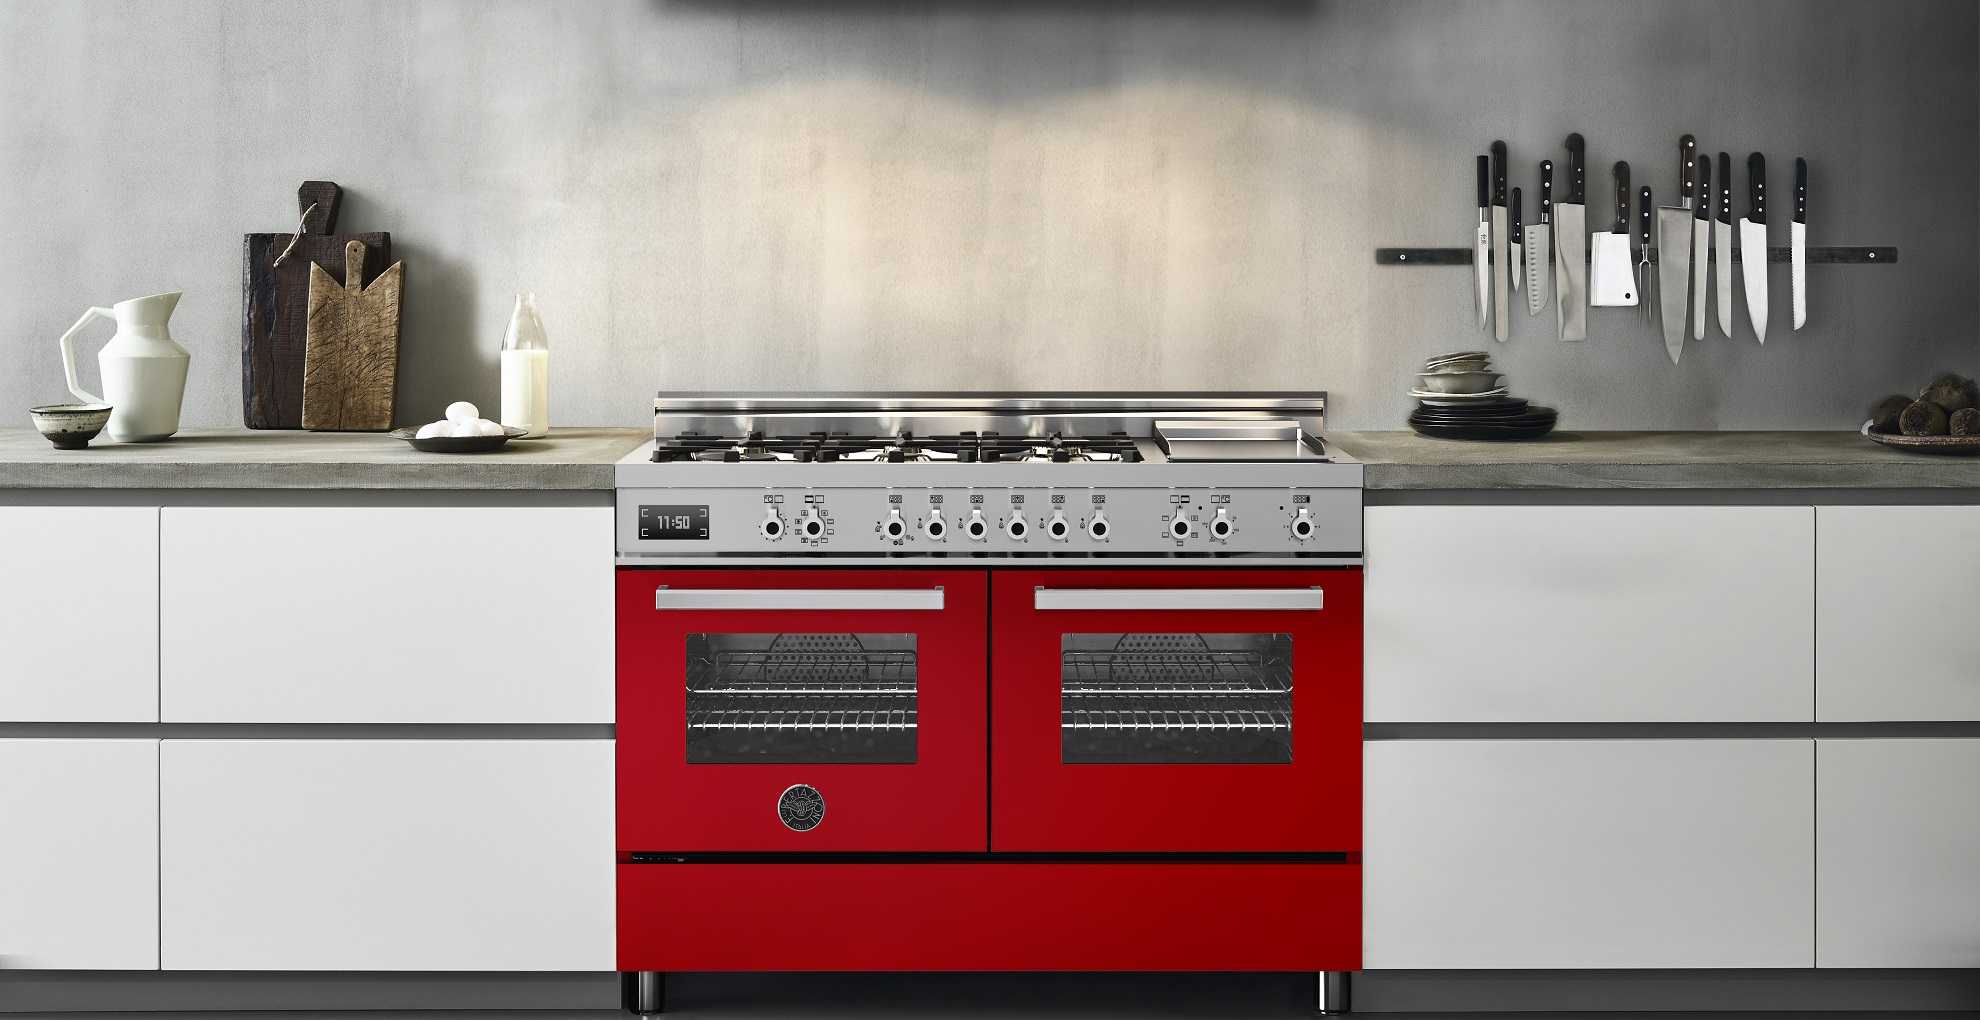 Clean Stove Tops How To Remove Grease From Gl Or Gas Cooktops With Baking Soda And More Real Homes